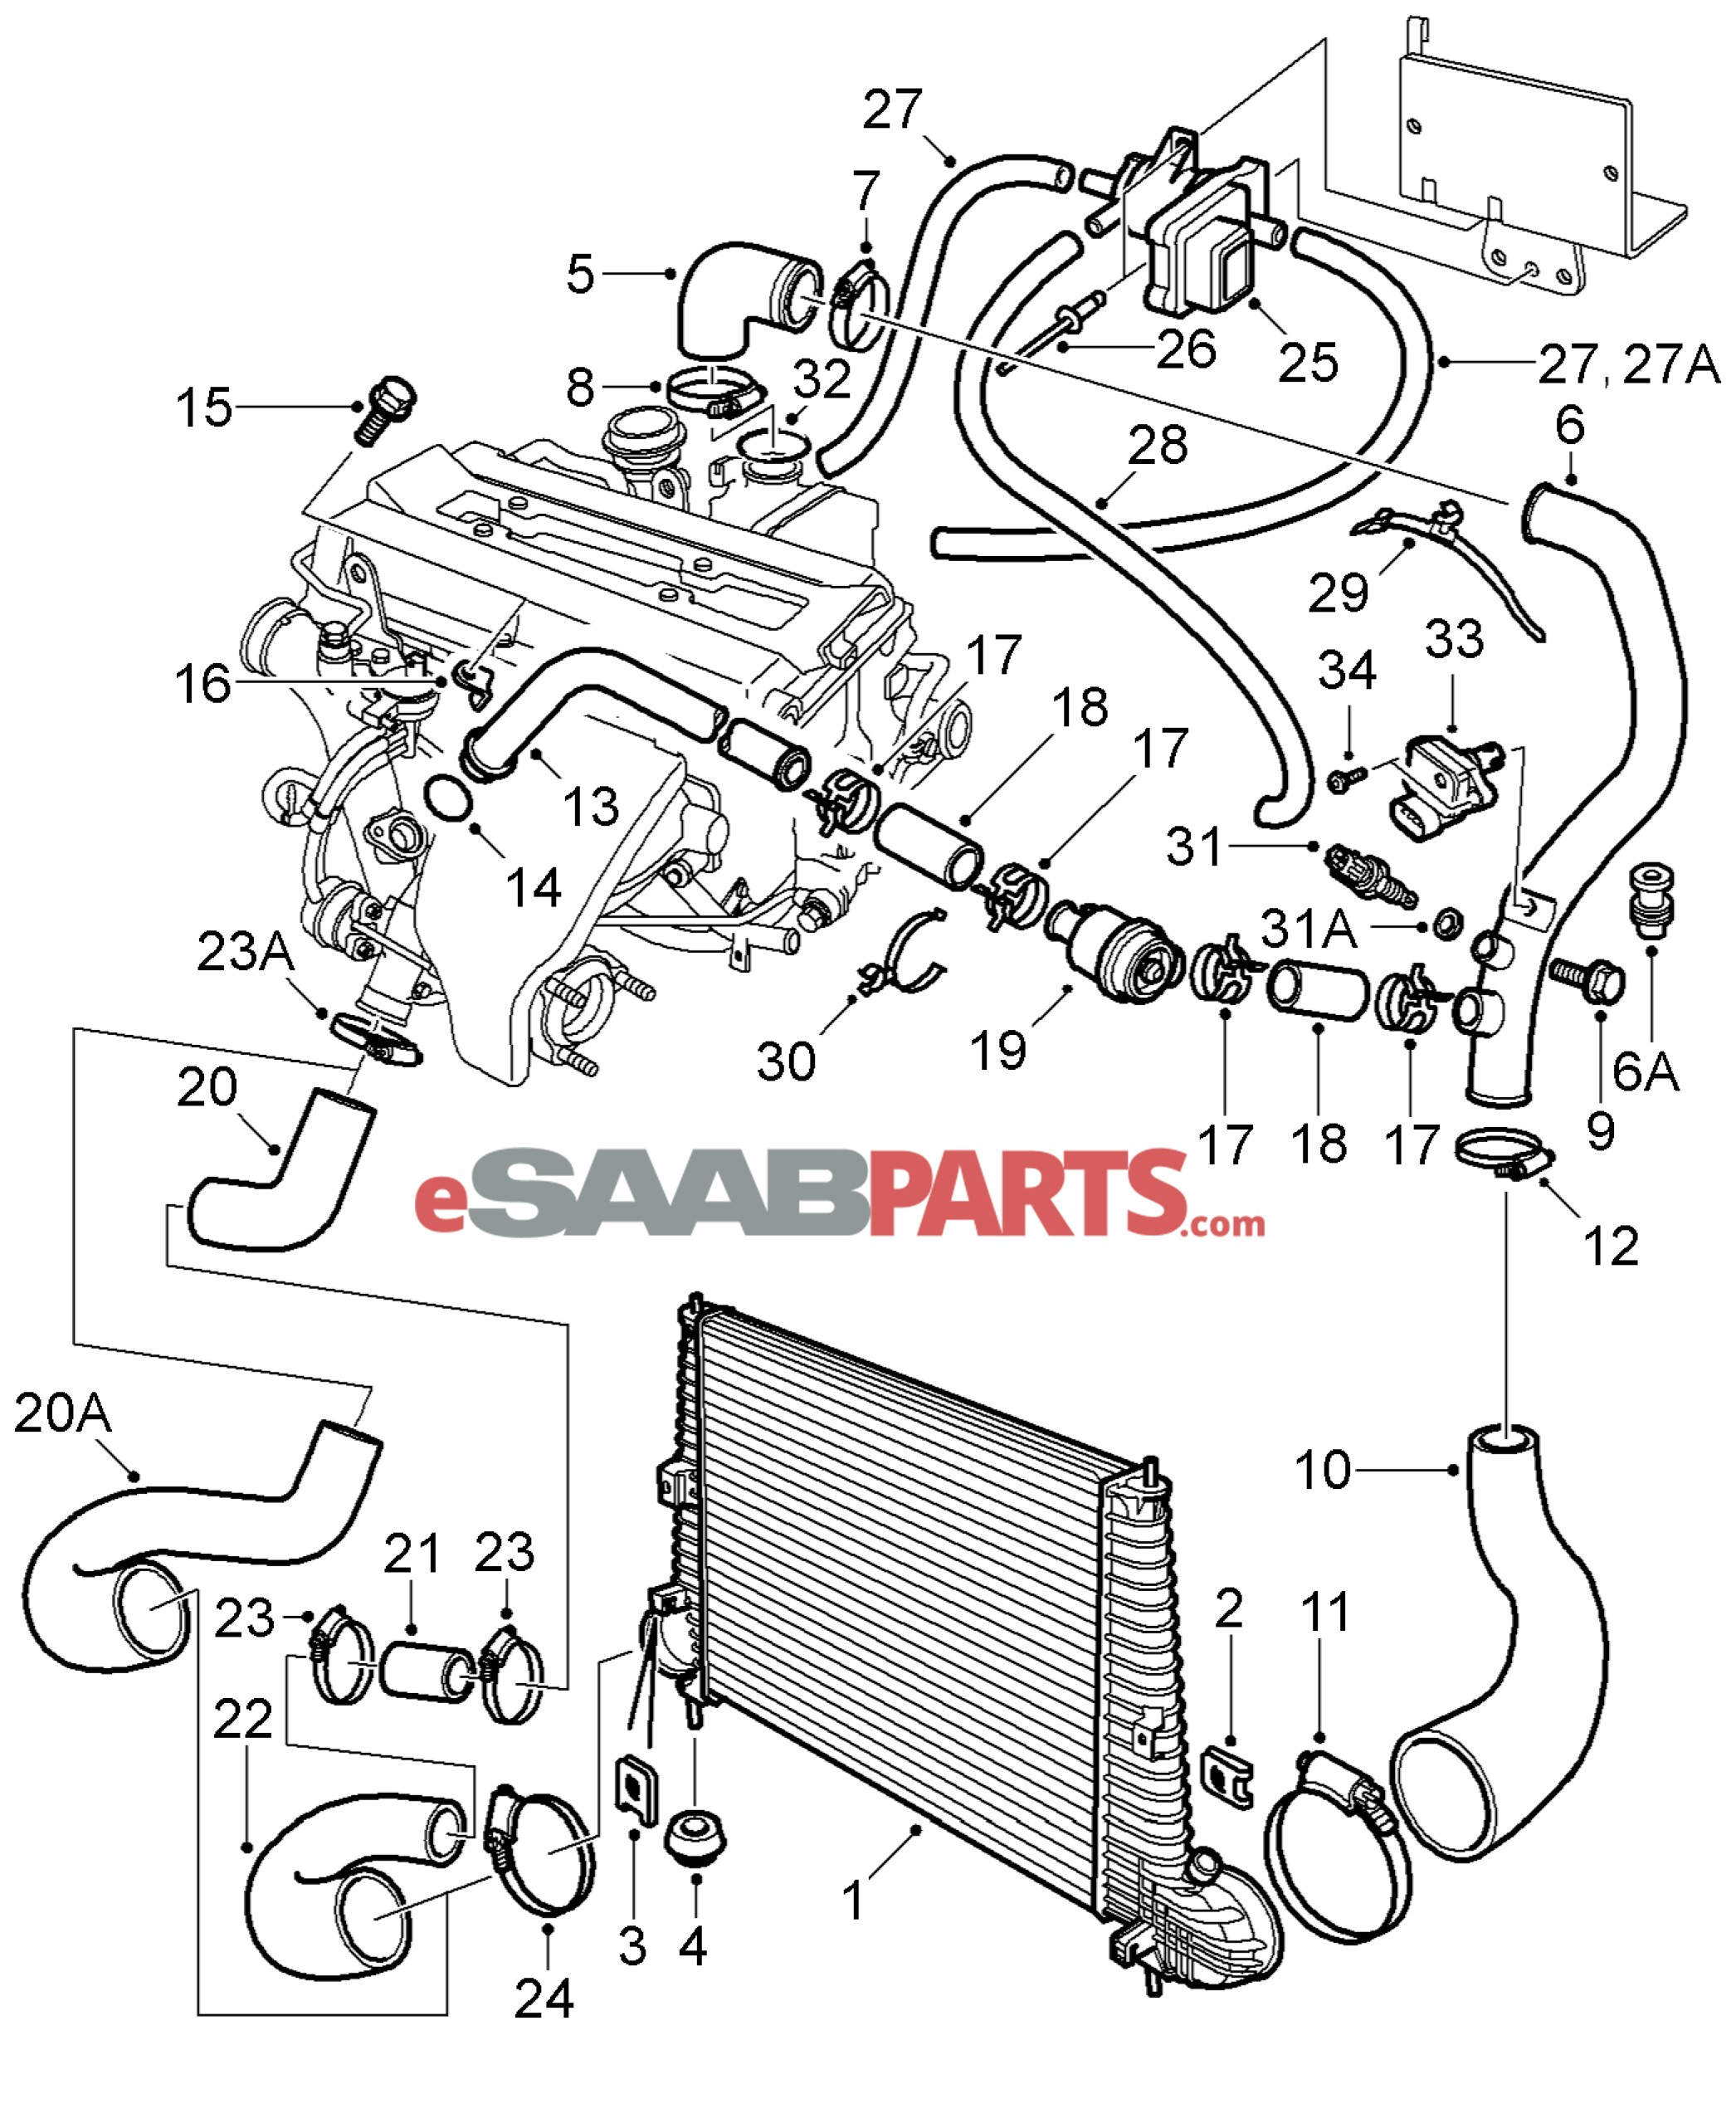 saab 900 fuse box wiring library  saab 2 8 engine diagram explore schematic wiring diagram u2022 rh webwiringdiagram today 1992 saab 900